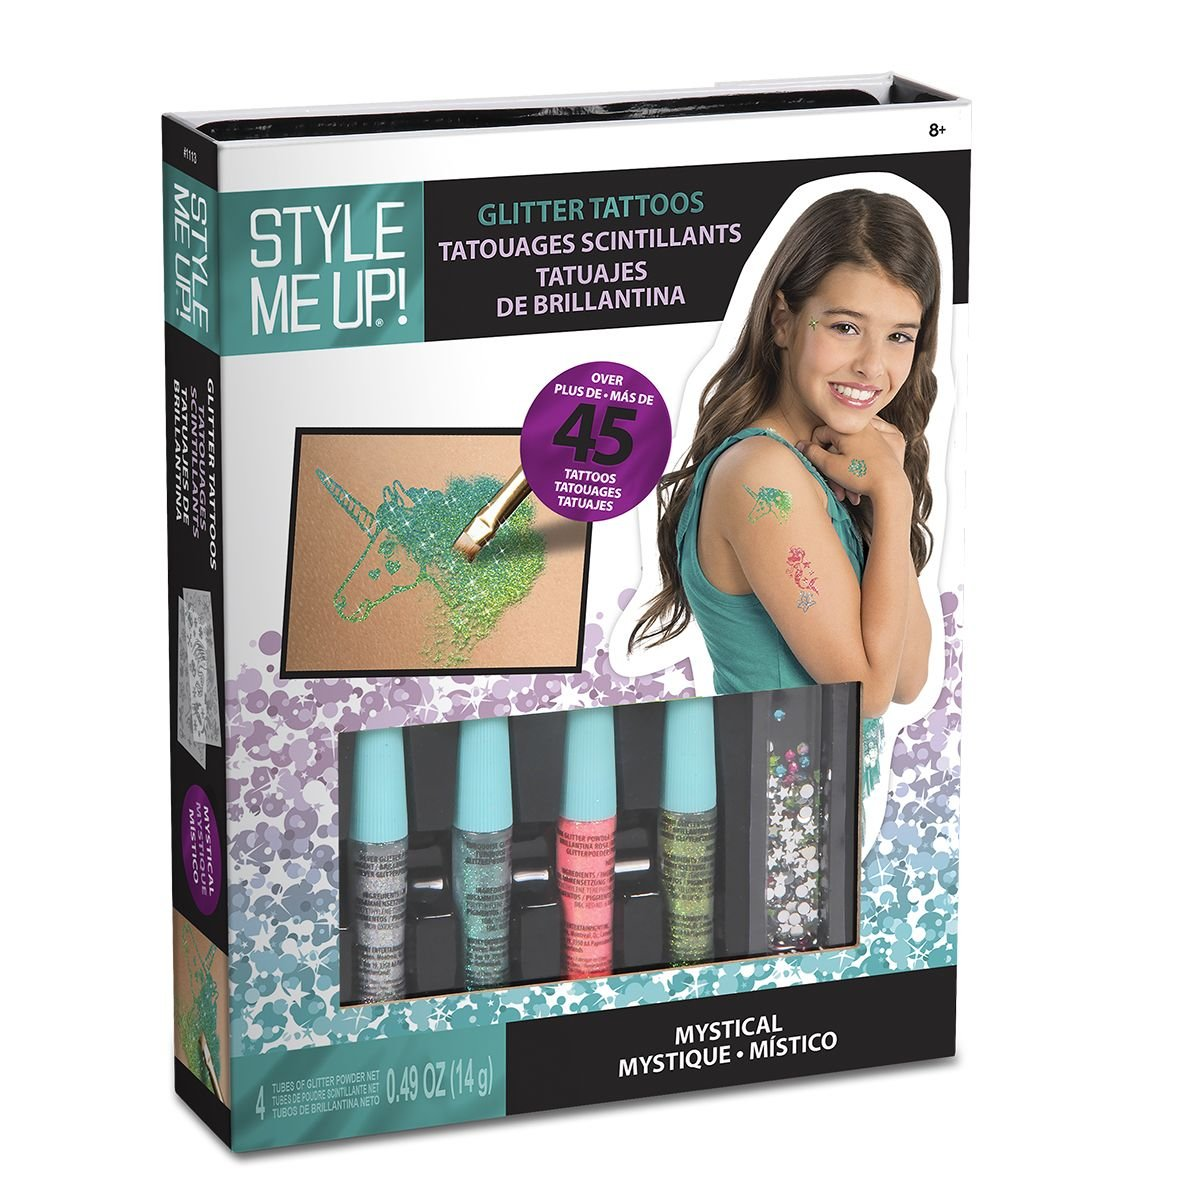 Style Me Up Kids' Glittering Tattoo Set Sparkling Tattoo Craft Kit for Girls and Boys Creative Gift Idea for Birthday SMU 1113